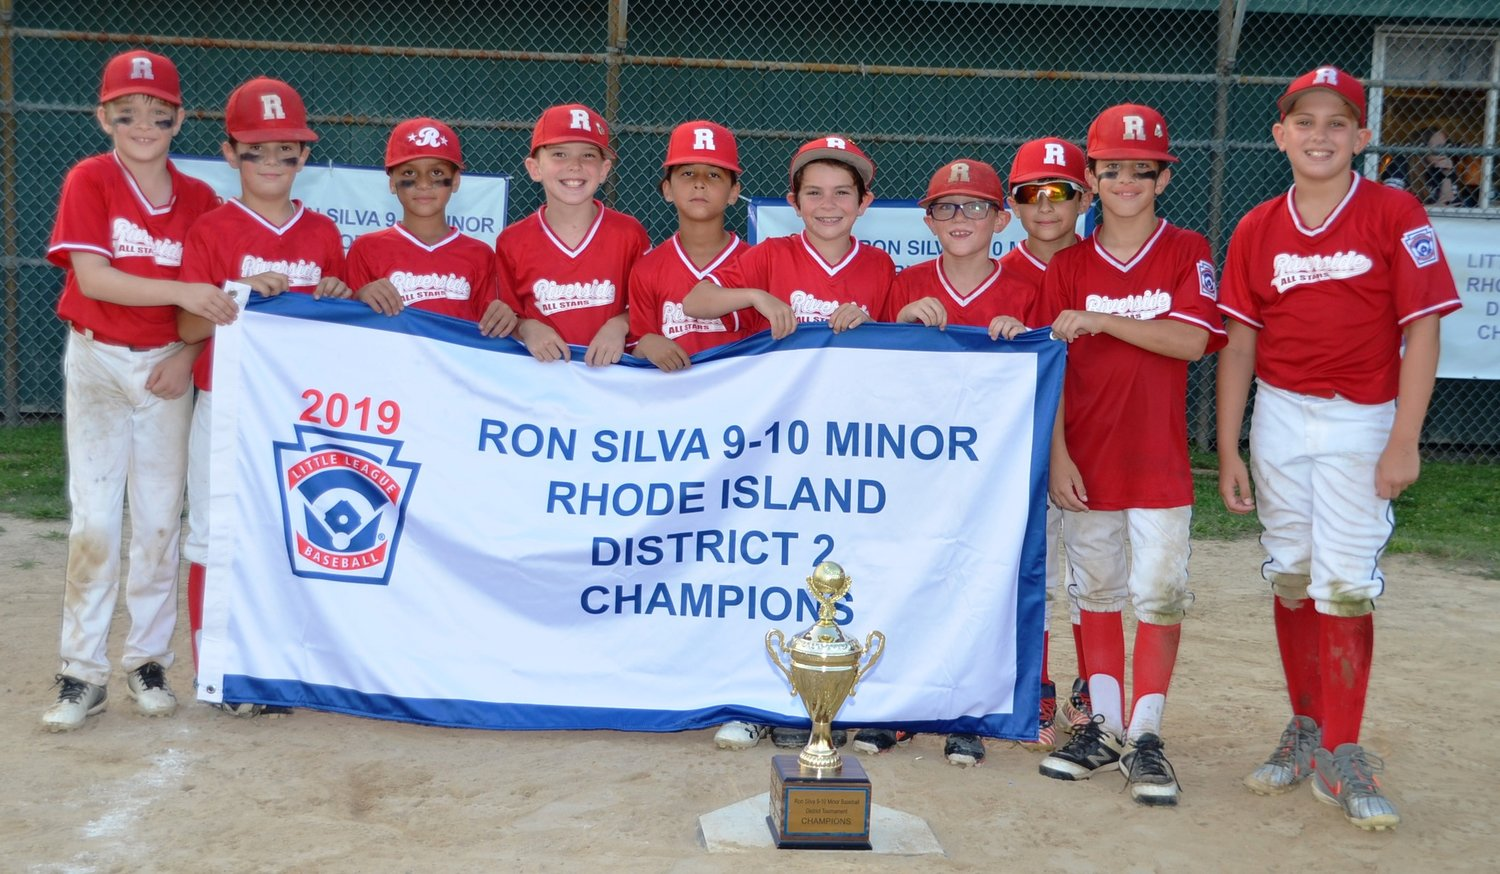 Riverside LL 9-10 Champions third year in a row. Photo by Kathy Saleeba.